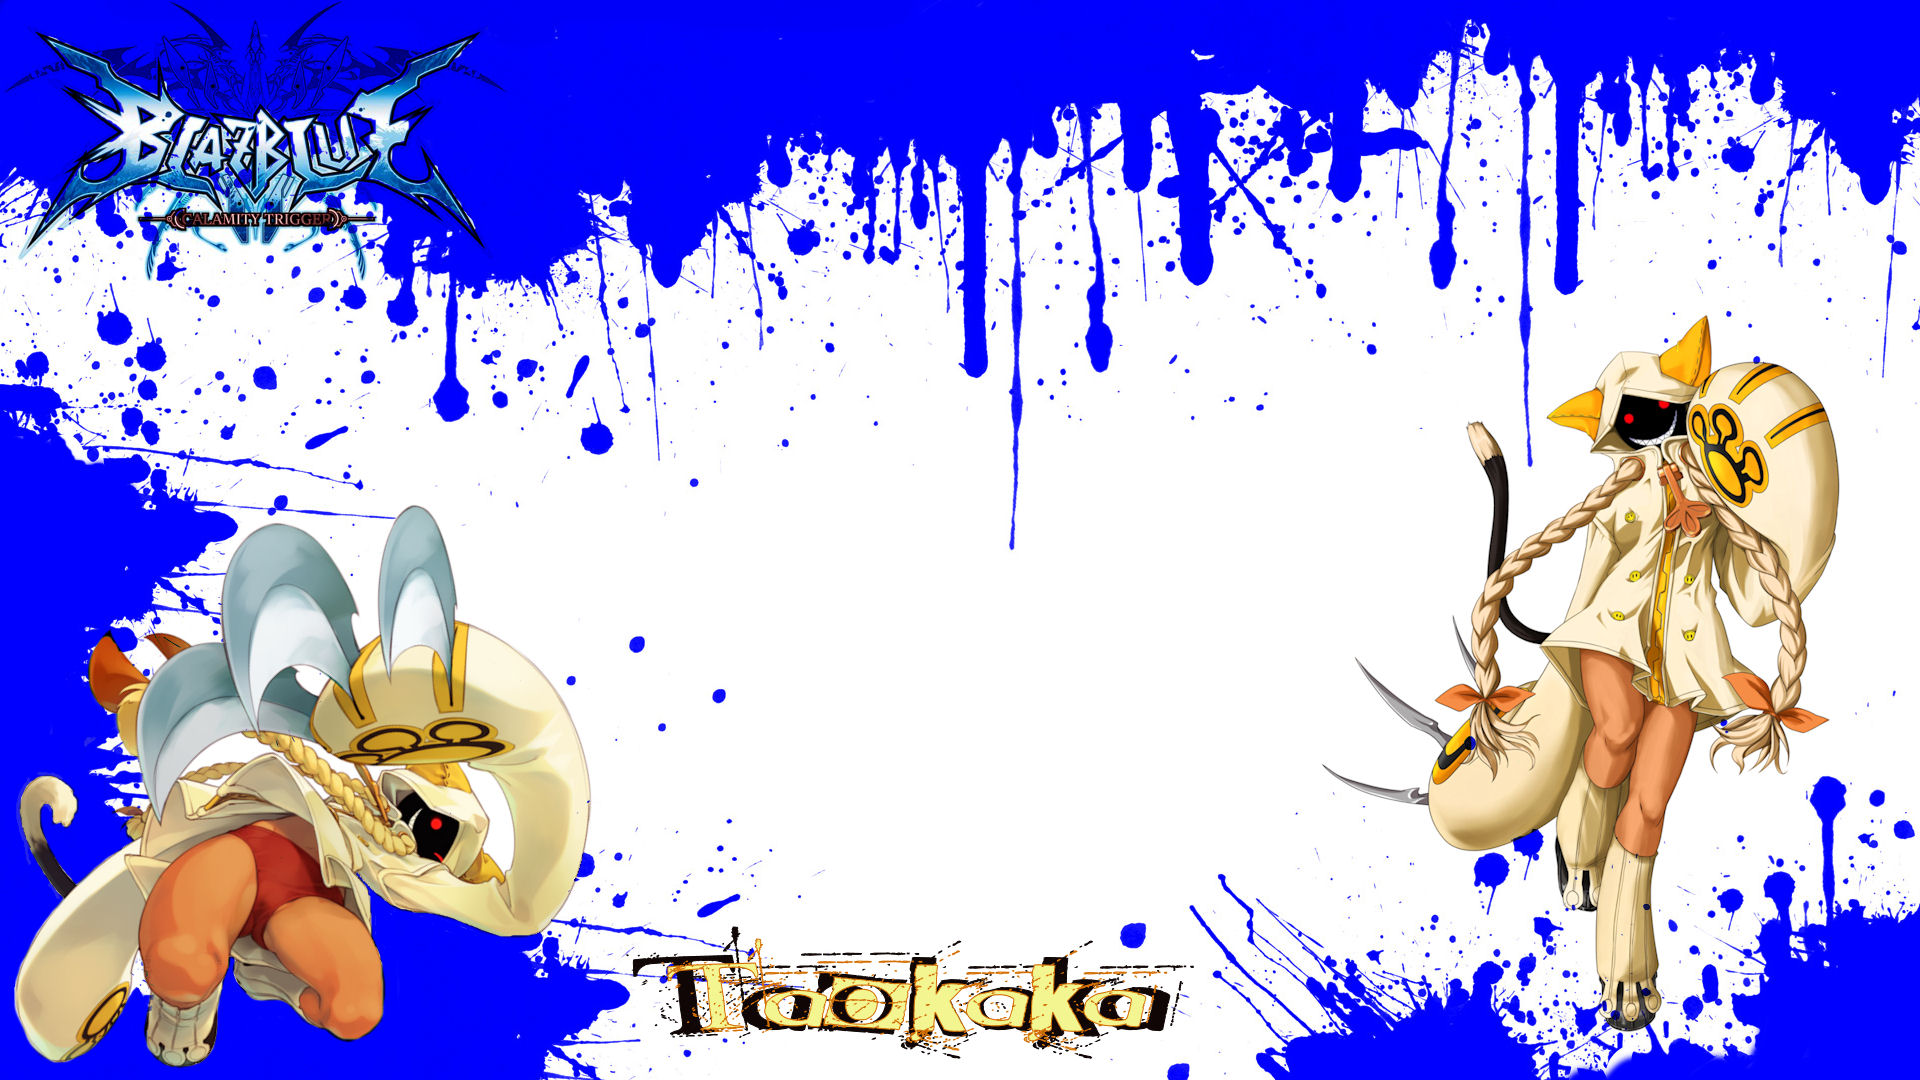 BlazBlue - Taokaka Wallpapers